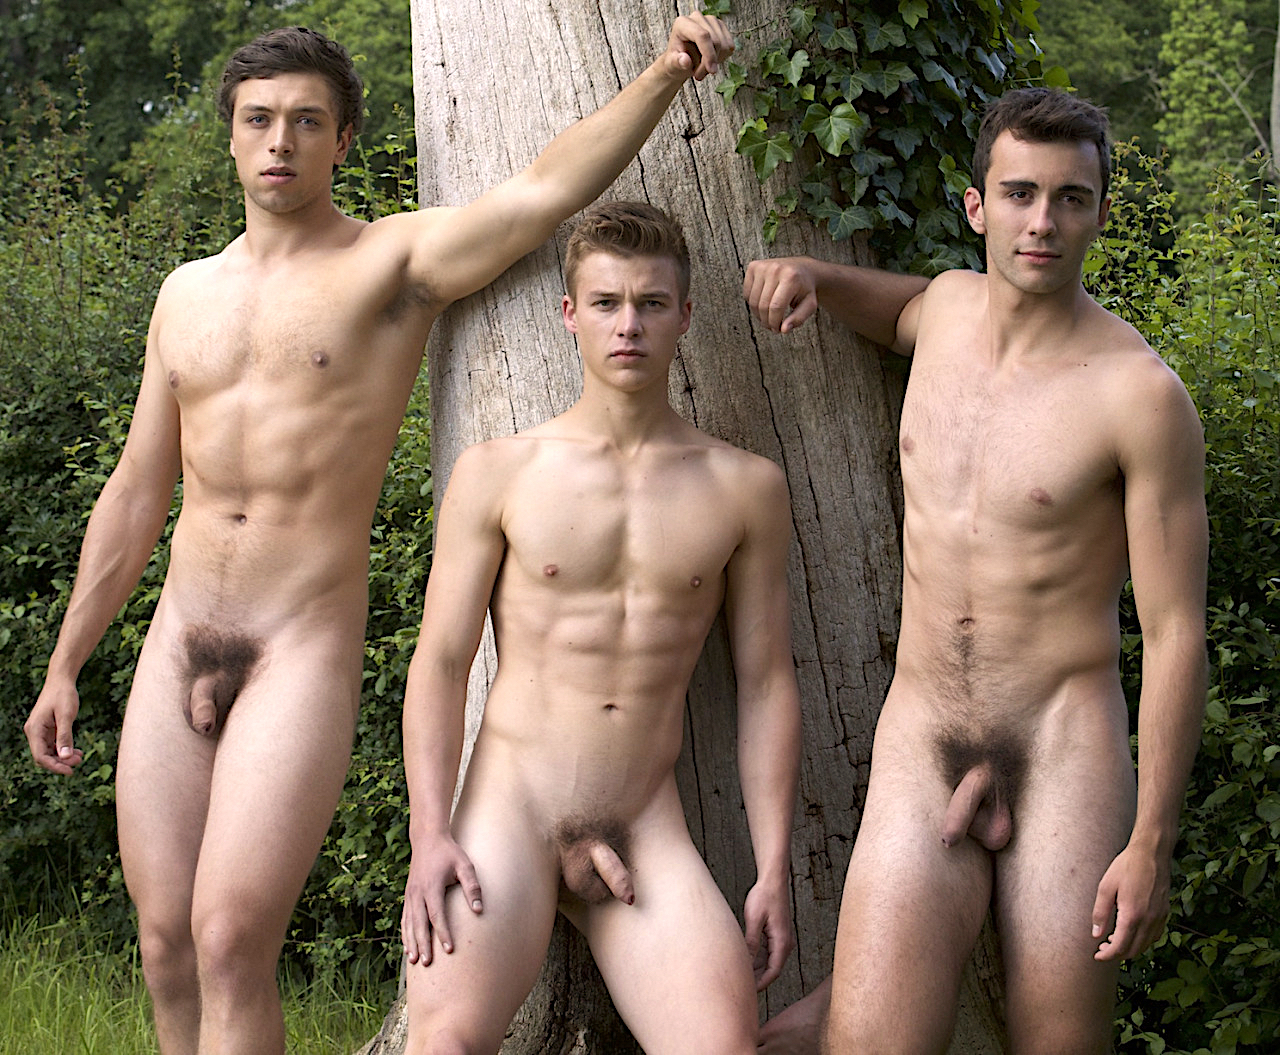 Pictures of naked guys with small dicks